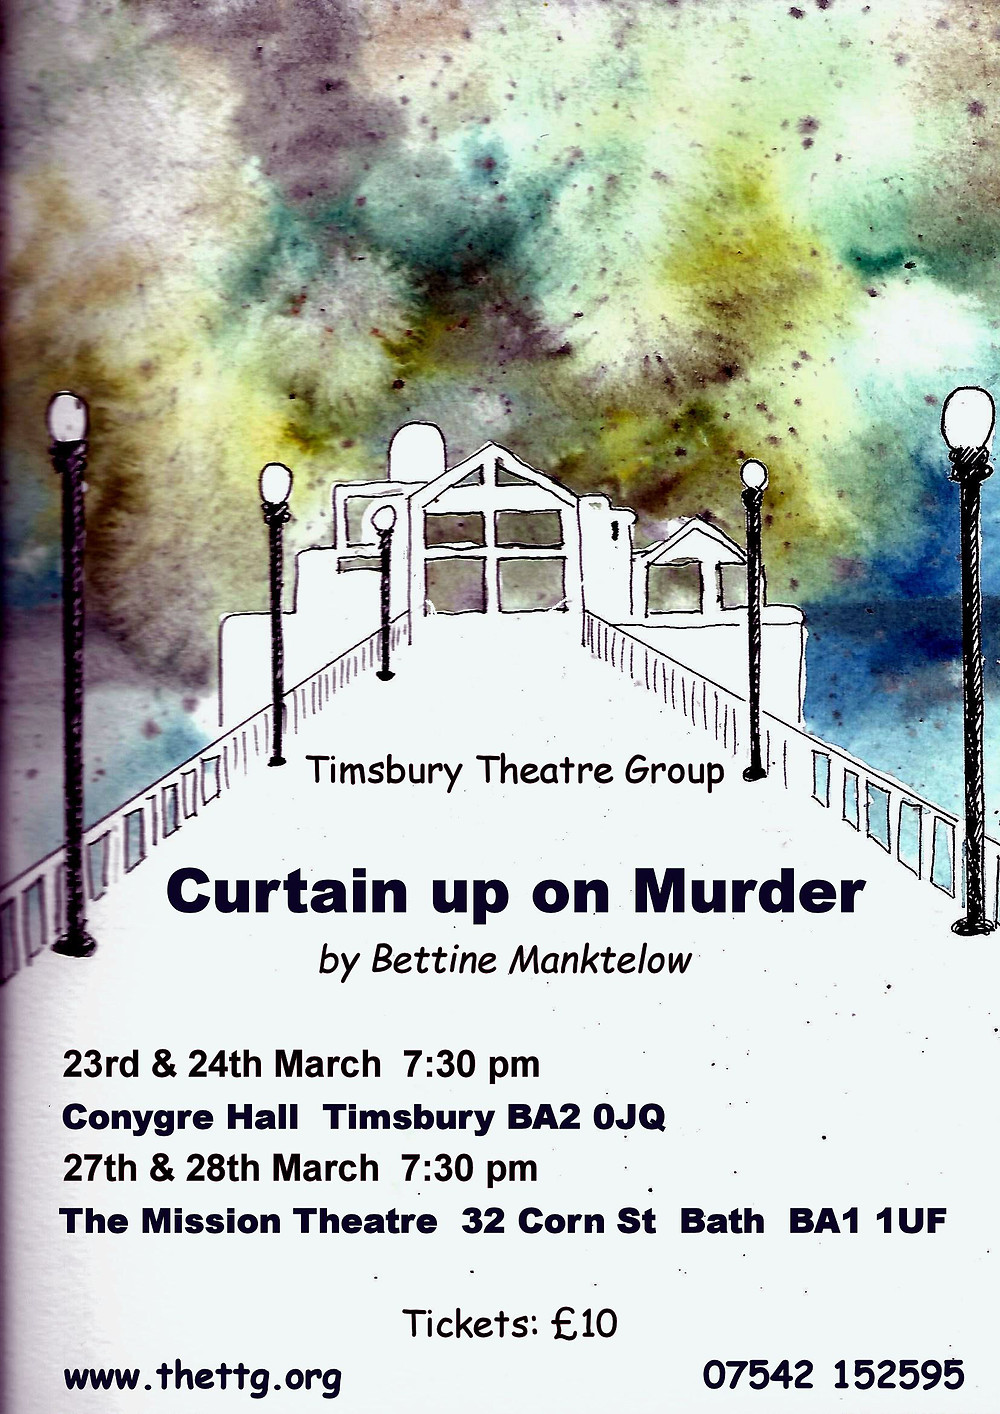 Rehearsals for our next production Curtain up on murder are well underway, again this year we are lucky enough to be taking this fabulous play to The Mission Theatre as we did with Agatha Crustie. Our Box office is now open, you can purchase tickets for bothe The Conygre Hall and The Mission Theatre online or through our box office mobile as on the poster below.